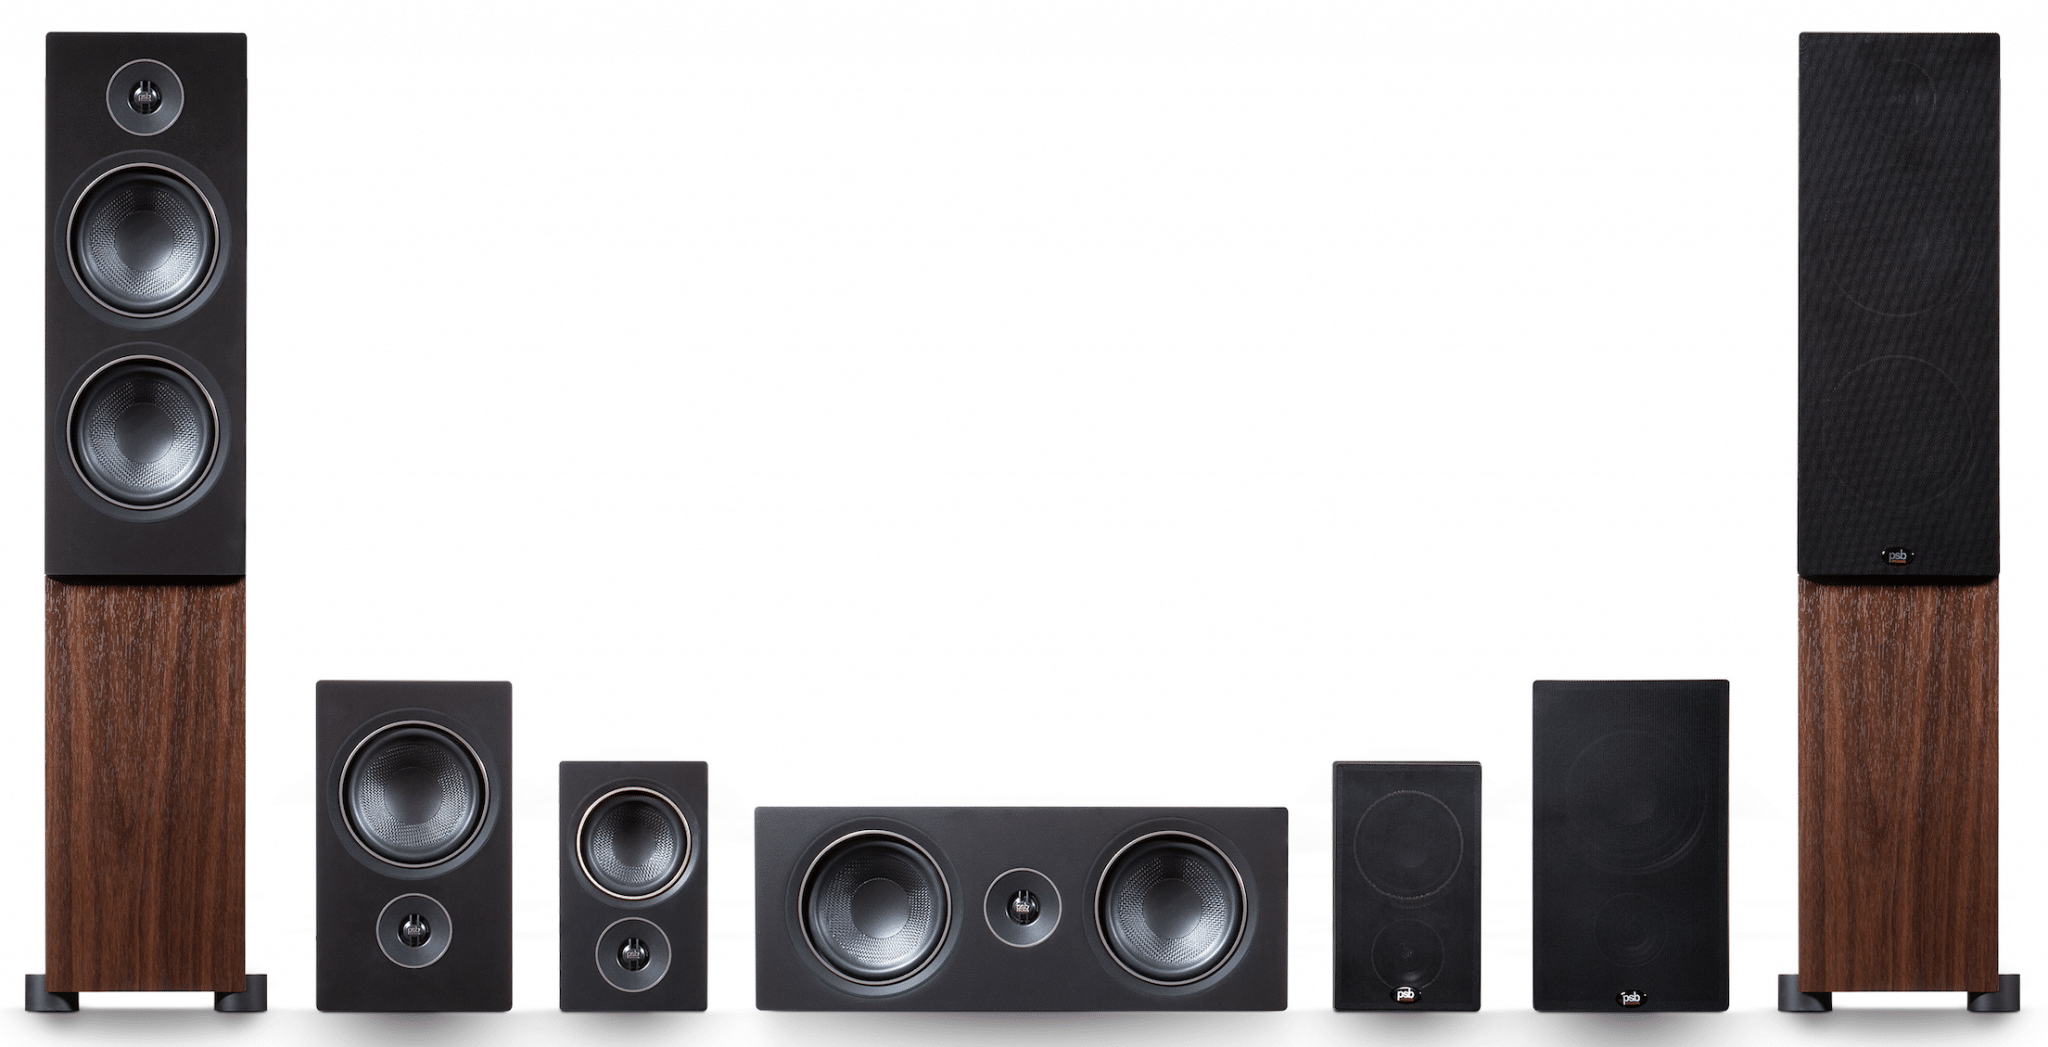 Alpha Series Speakers From PSB